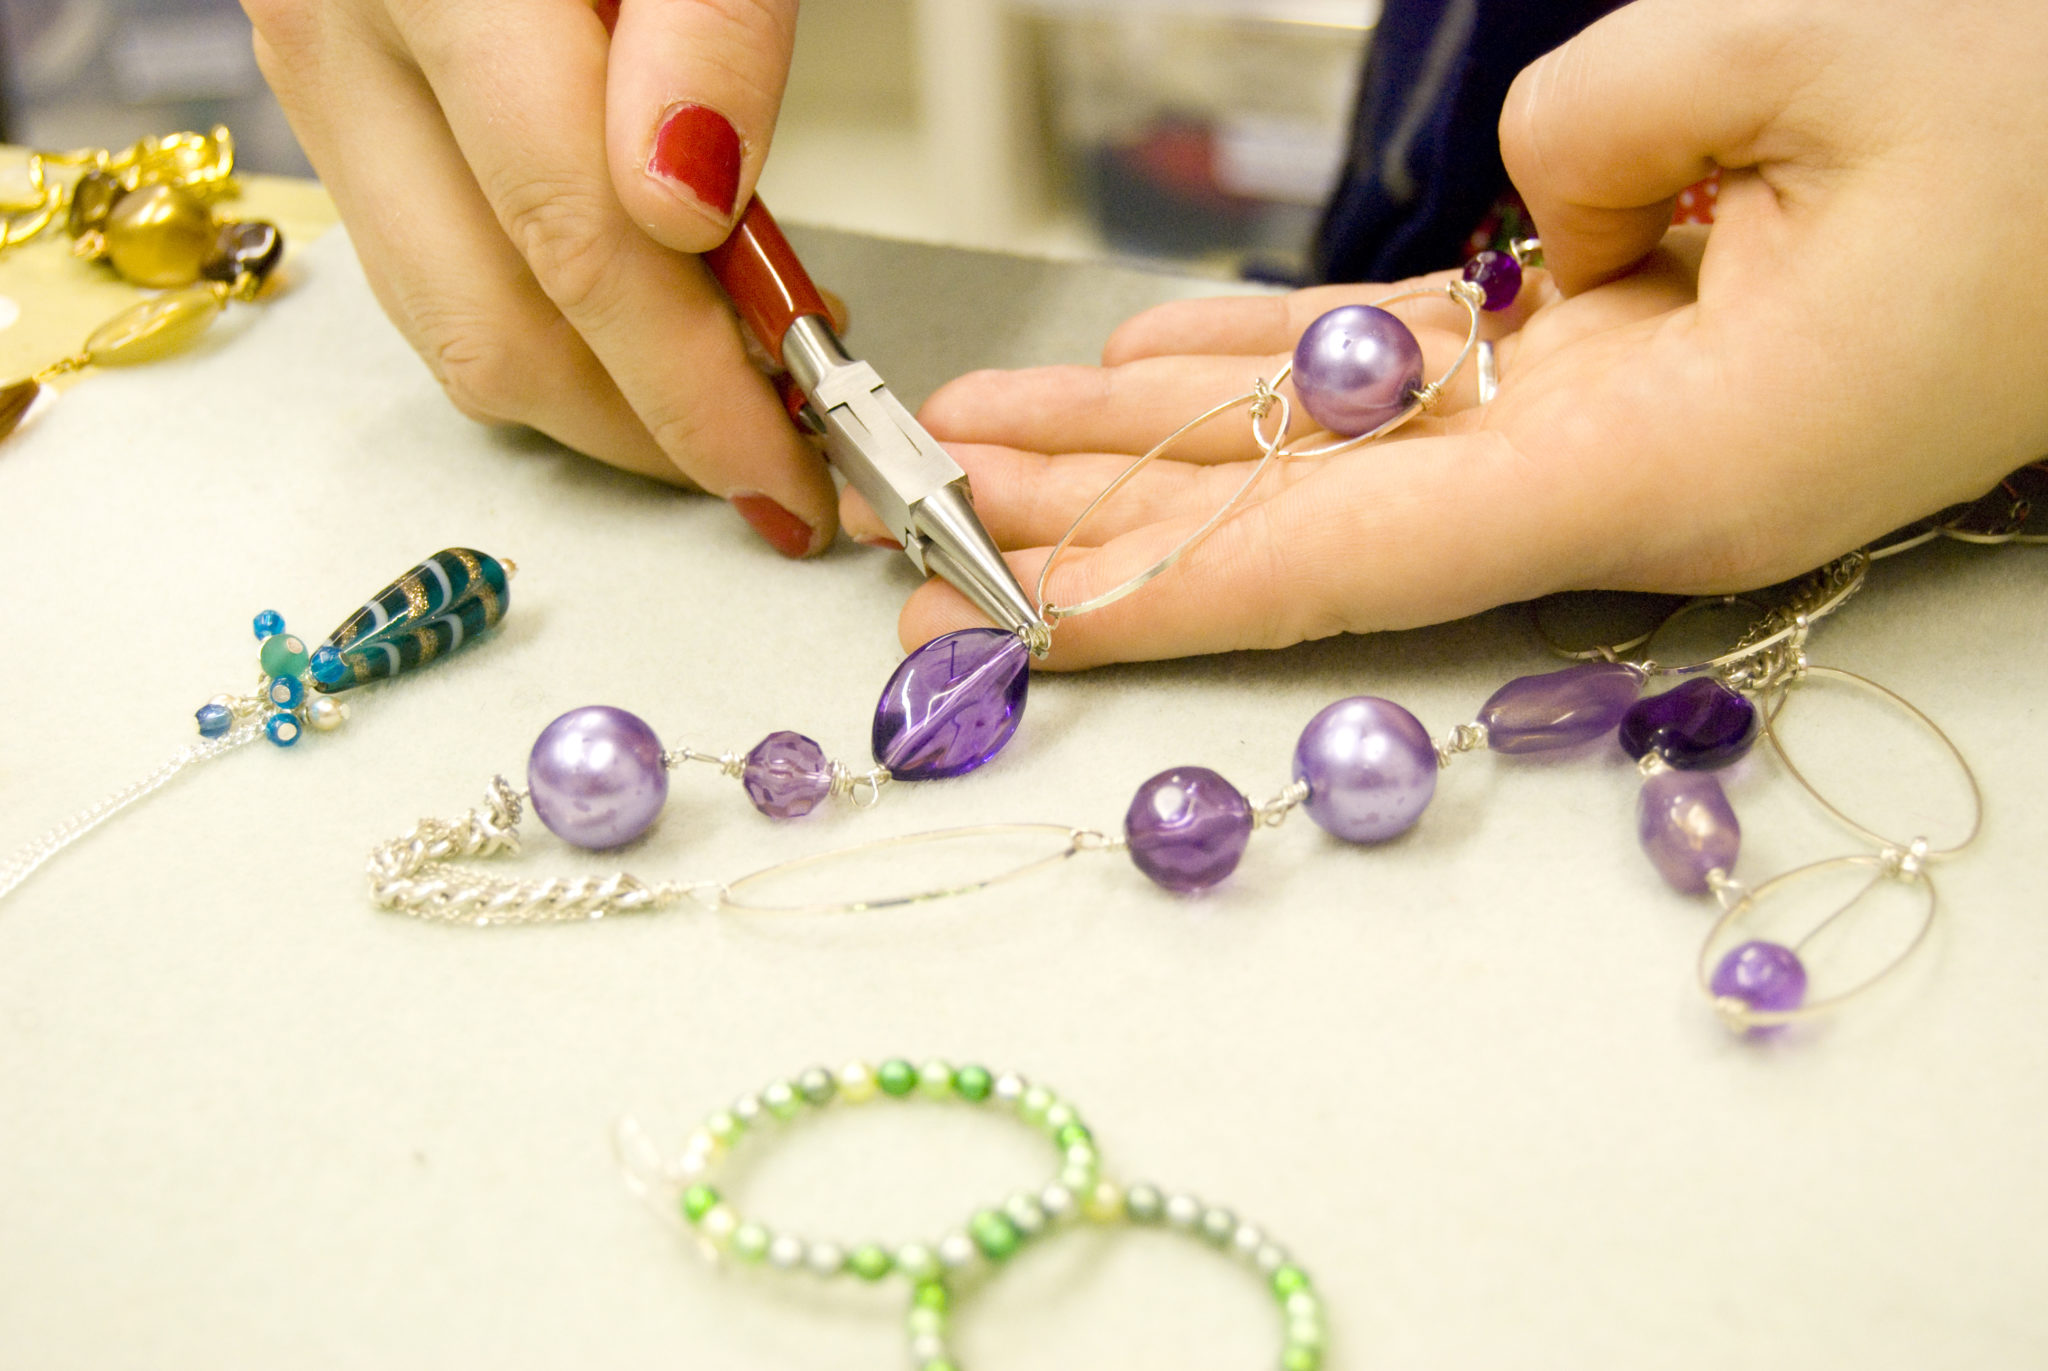 A Beginners Guide To Jewellery Making Shall Inspire You To Make ...